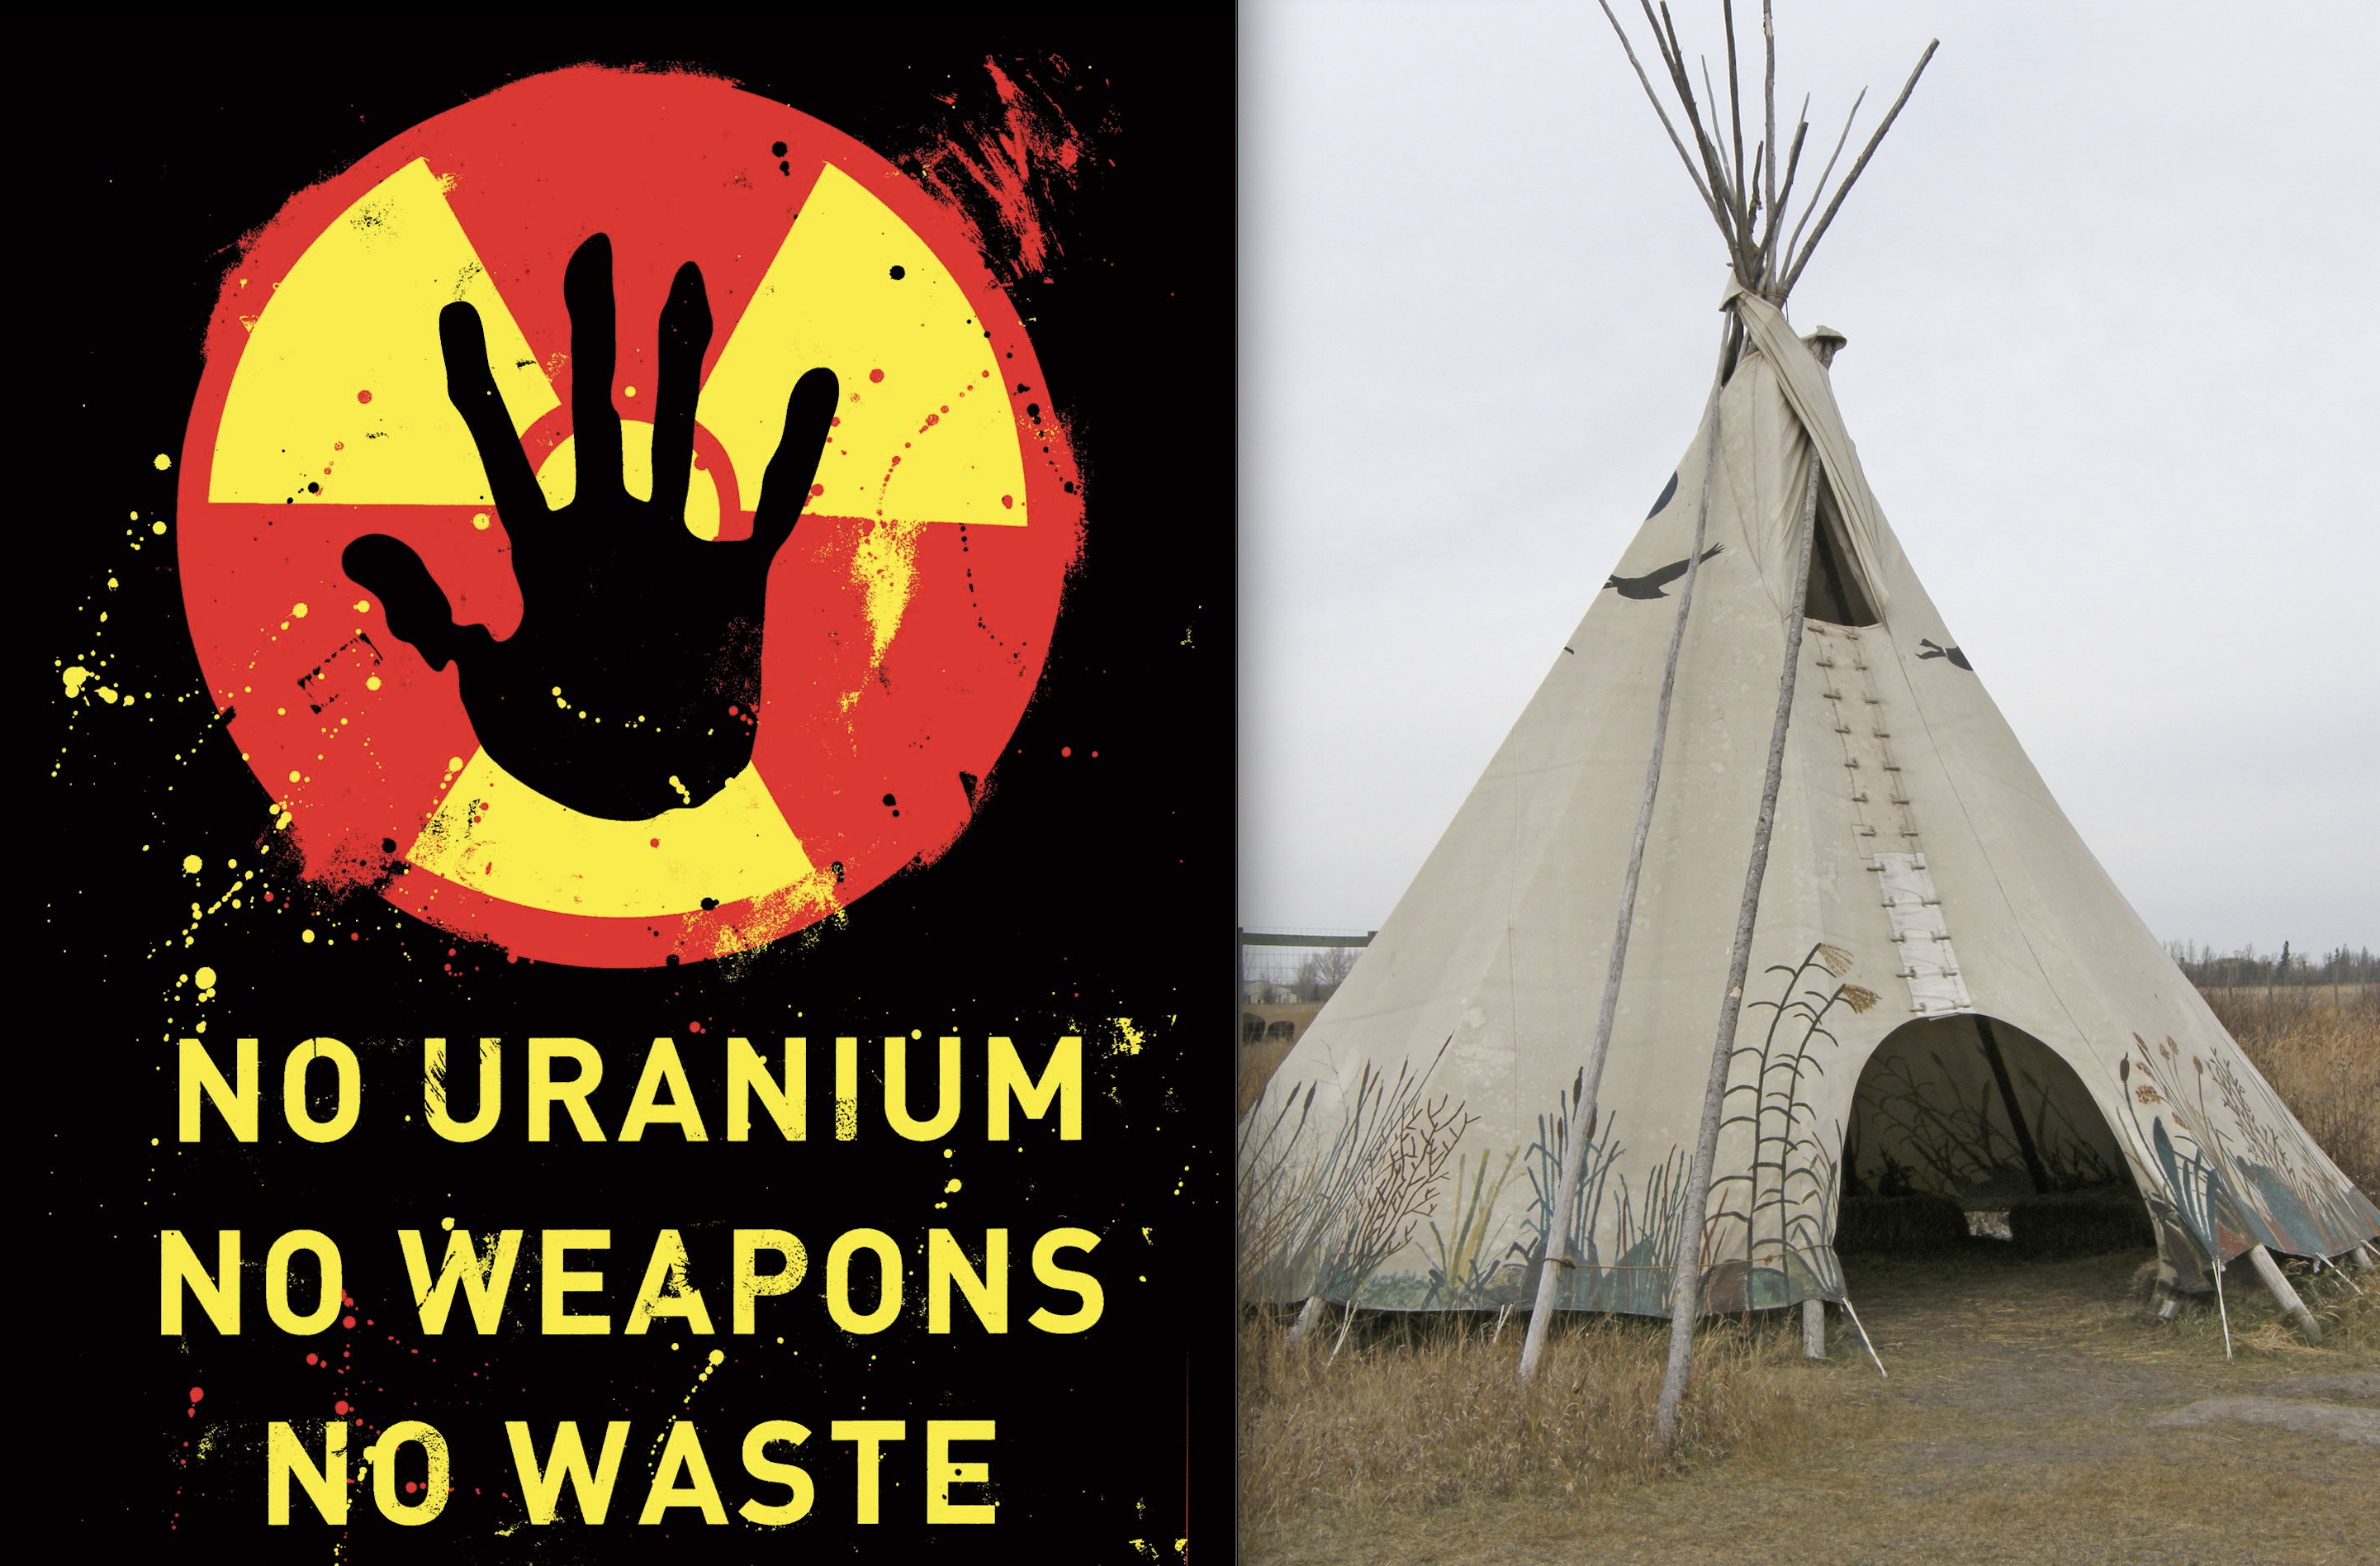 Dust-up: First Nations Group and Uranium Co. Clash; Teepee Blockage Goes up, Mining Co. Backs down